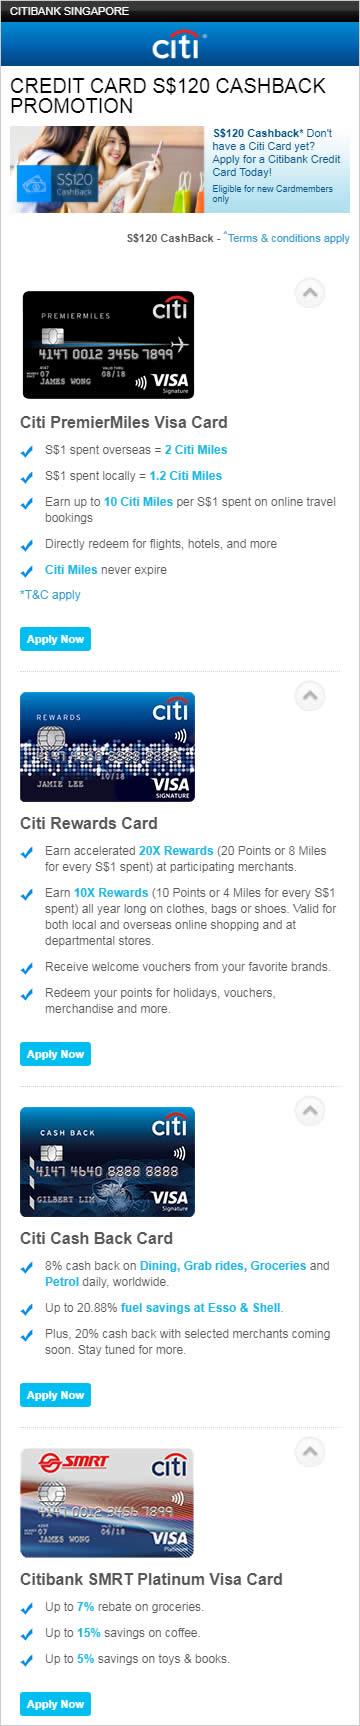 Apply Citibank Debit Card Now! Enjoy fee-free ATM withdrawals and